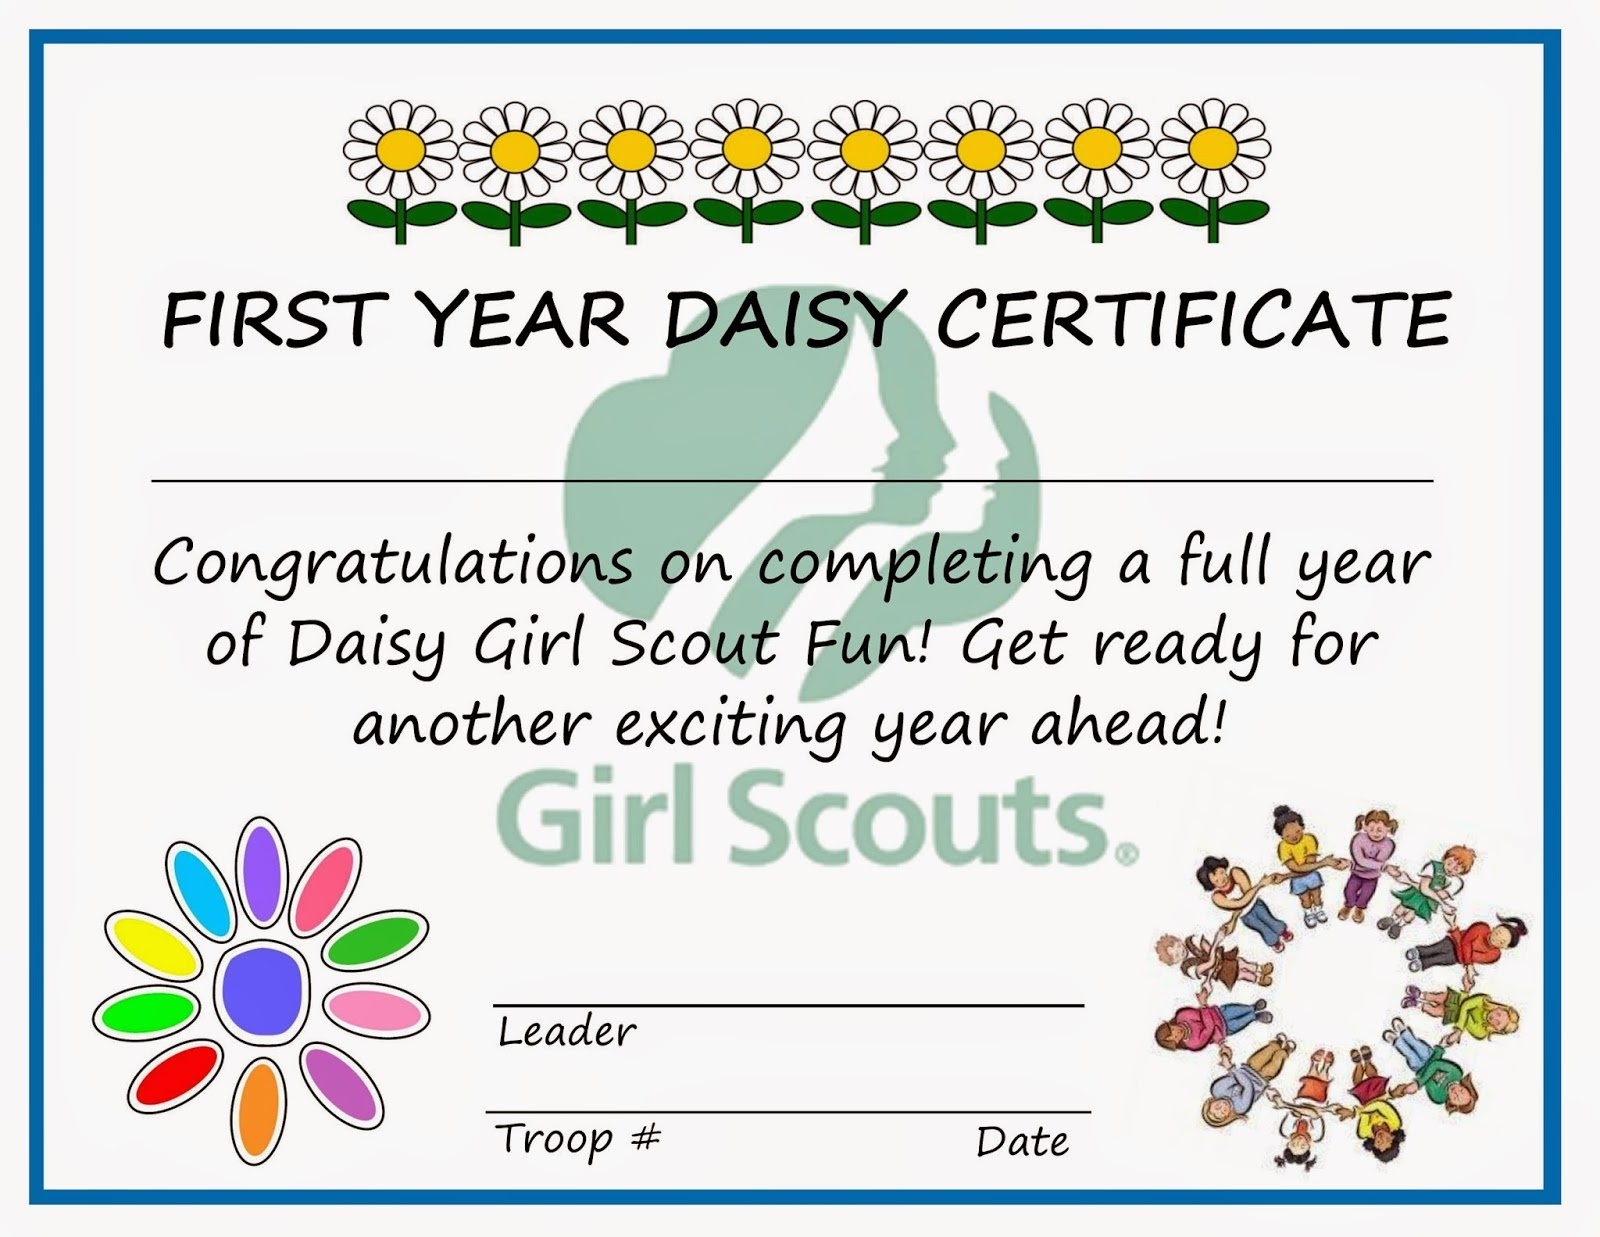 Girl Scouts Daisy Welcome Certificate Ideas | We Know How To Do It - Daisy Girl Scout Certificates Printable Free